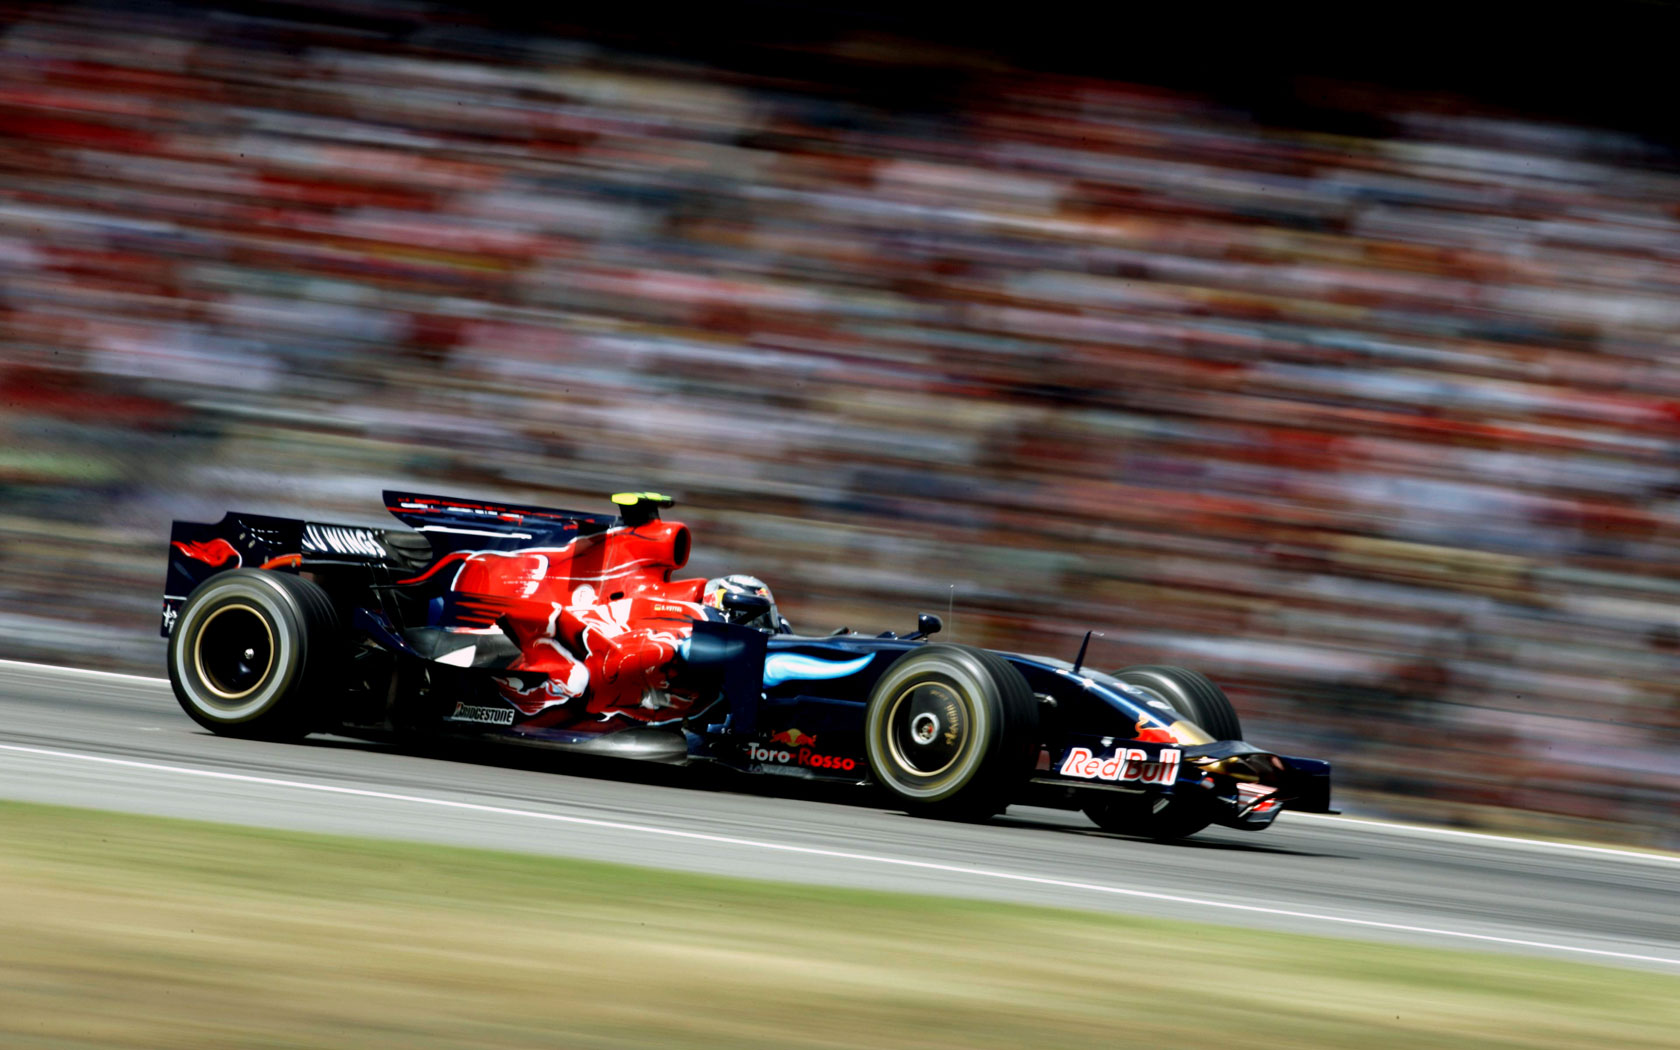 Toro rosso str3 photo - 9